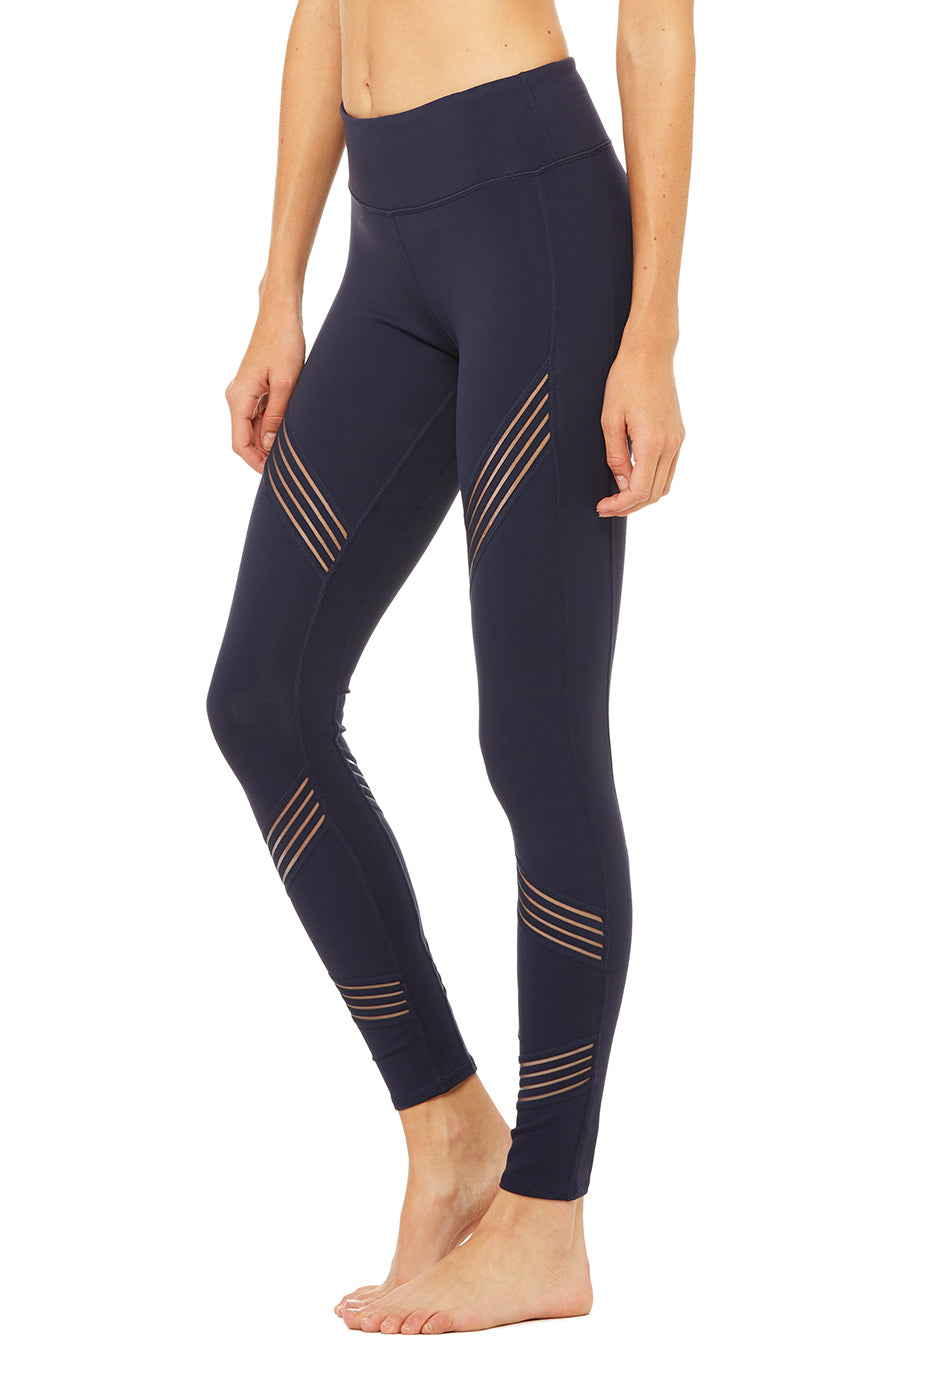 Multi Legging